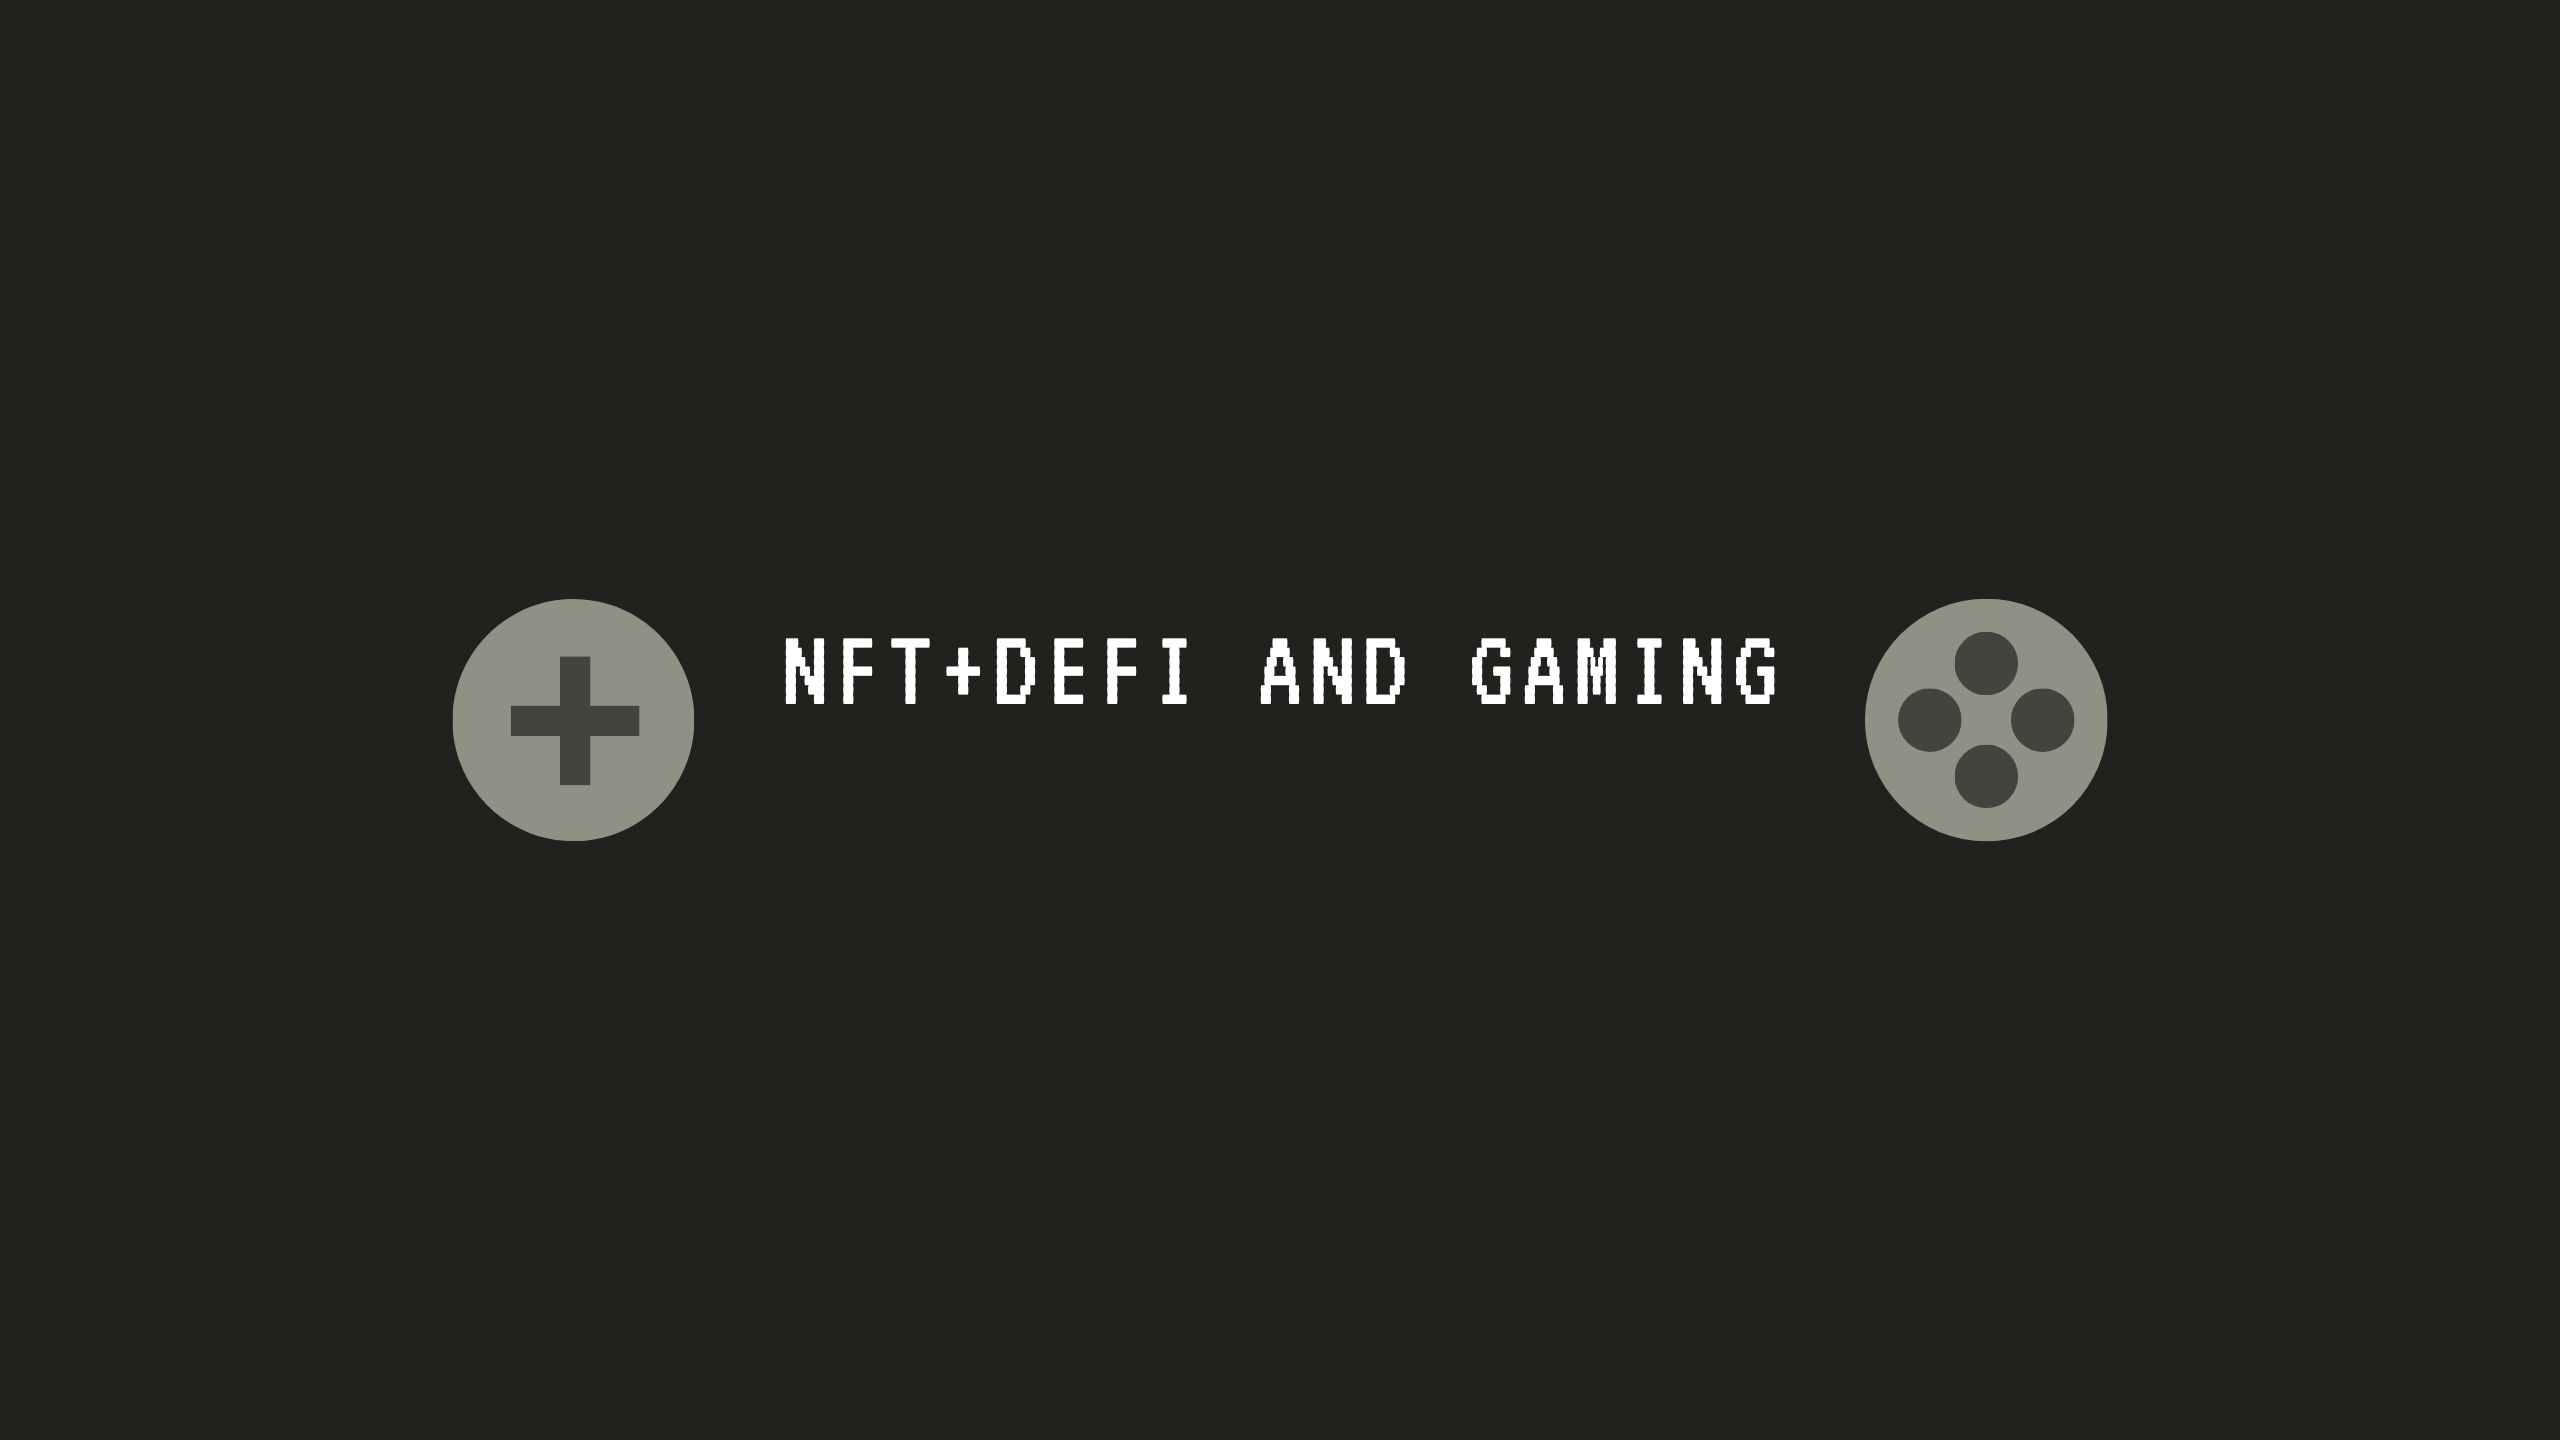 /everything-you-need-to-know-about-nfts-defi-and-gaming-rbm335n feature image